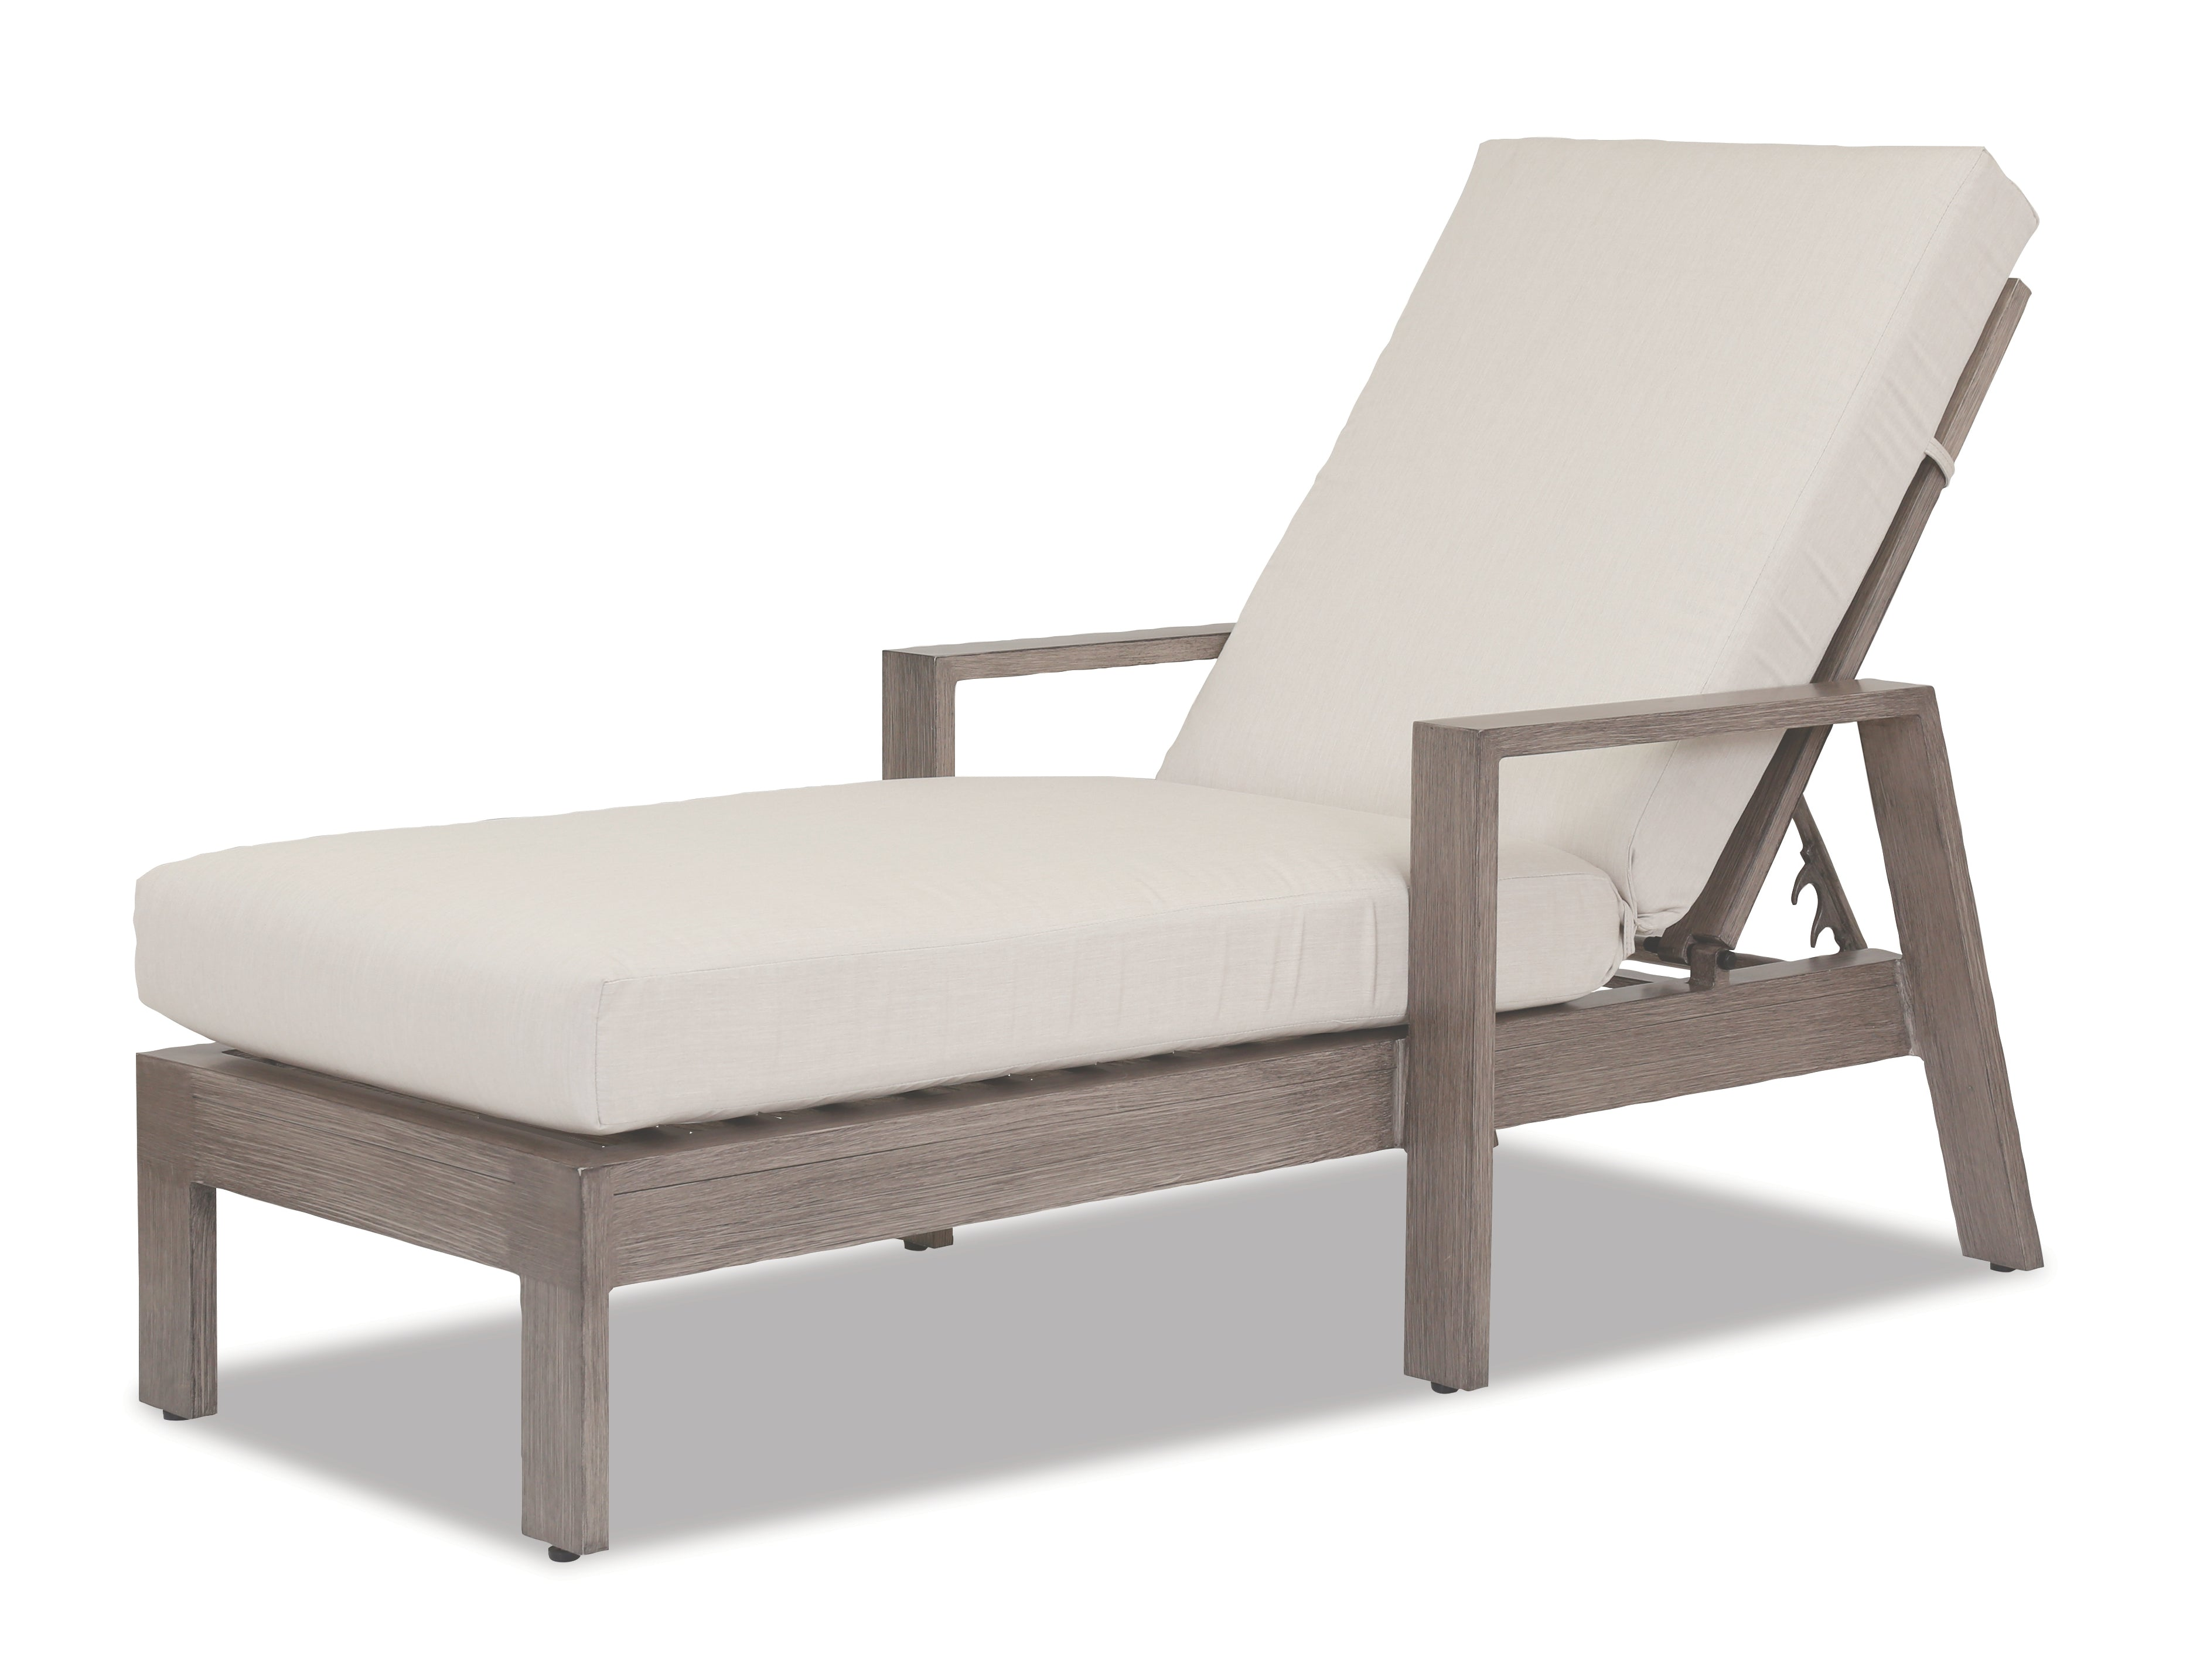 Laguna Chaise Lounge with cushions in Canvas Flax